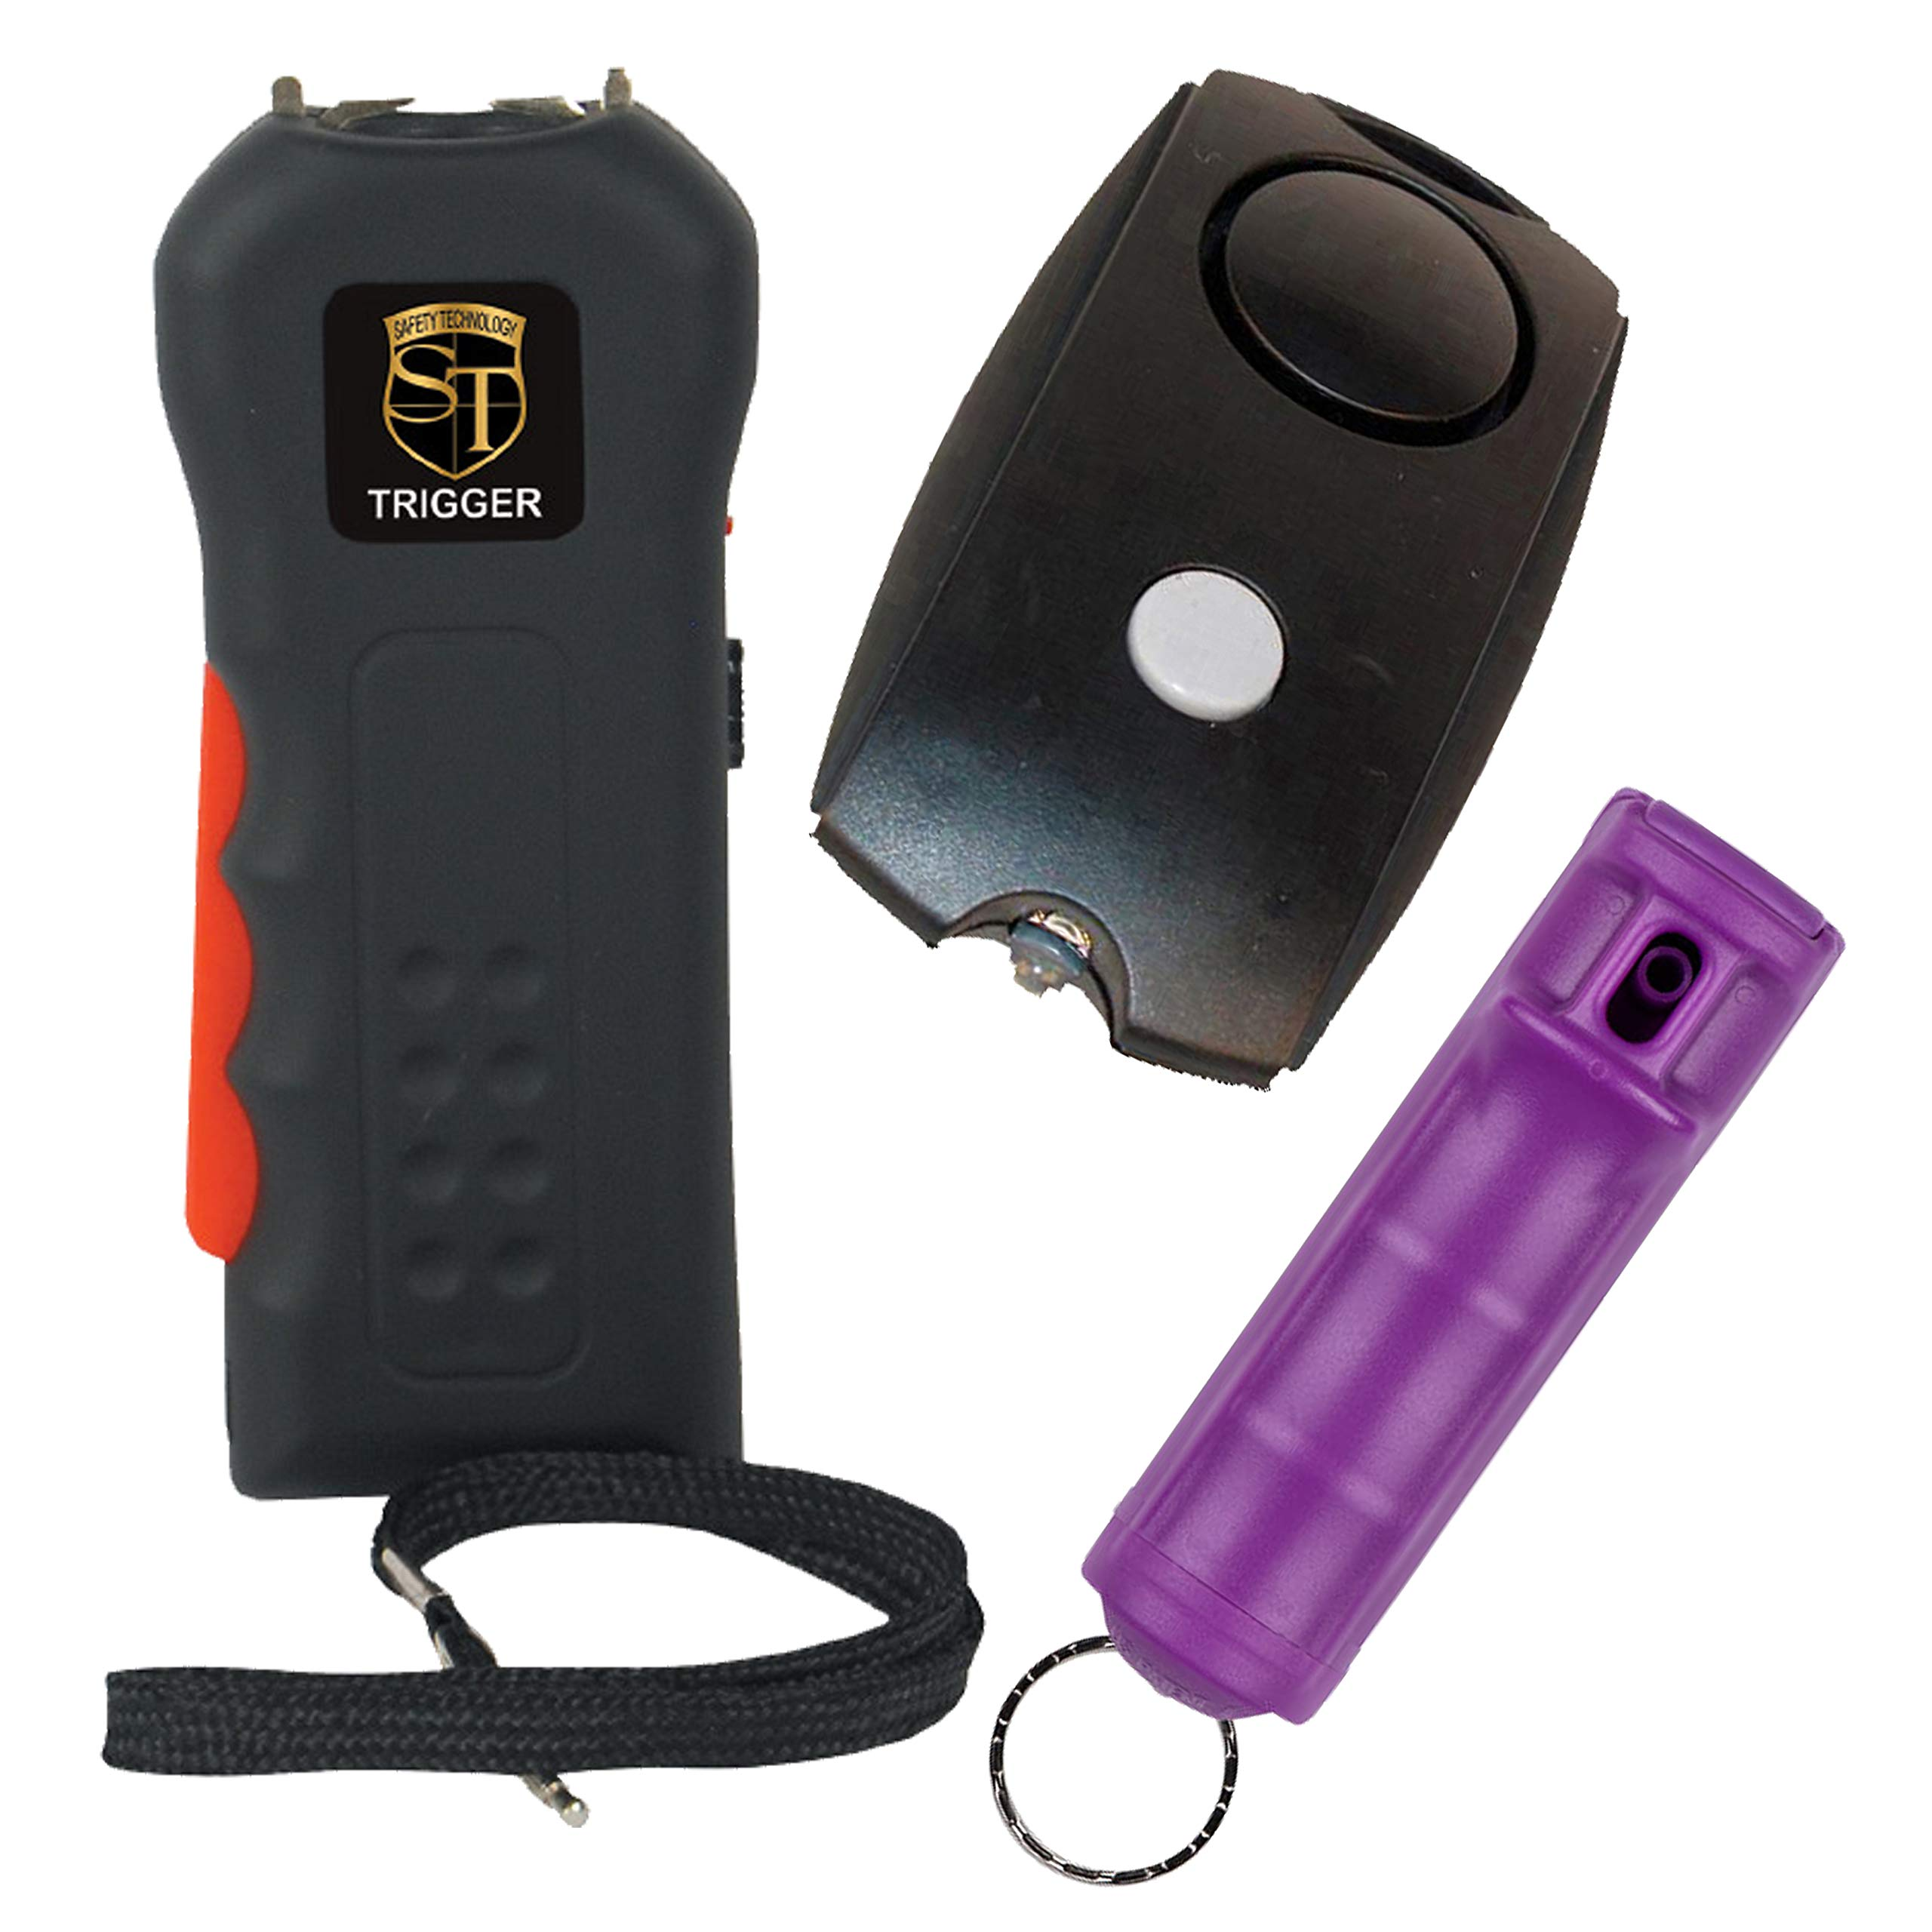 TRIGGER College Safety Bundle: 20 MIL Stun Gun, Sabre Purple Pepper Spray and a Black Personal Alarm - Lot of 3 as Shown